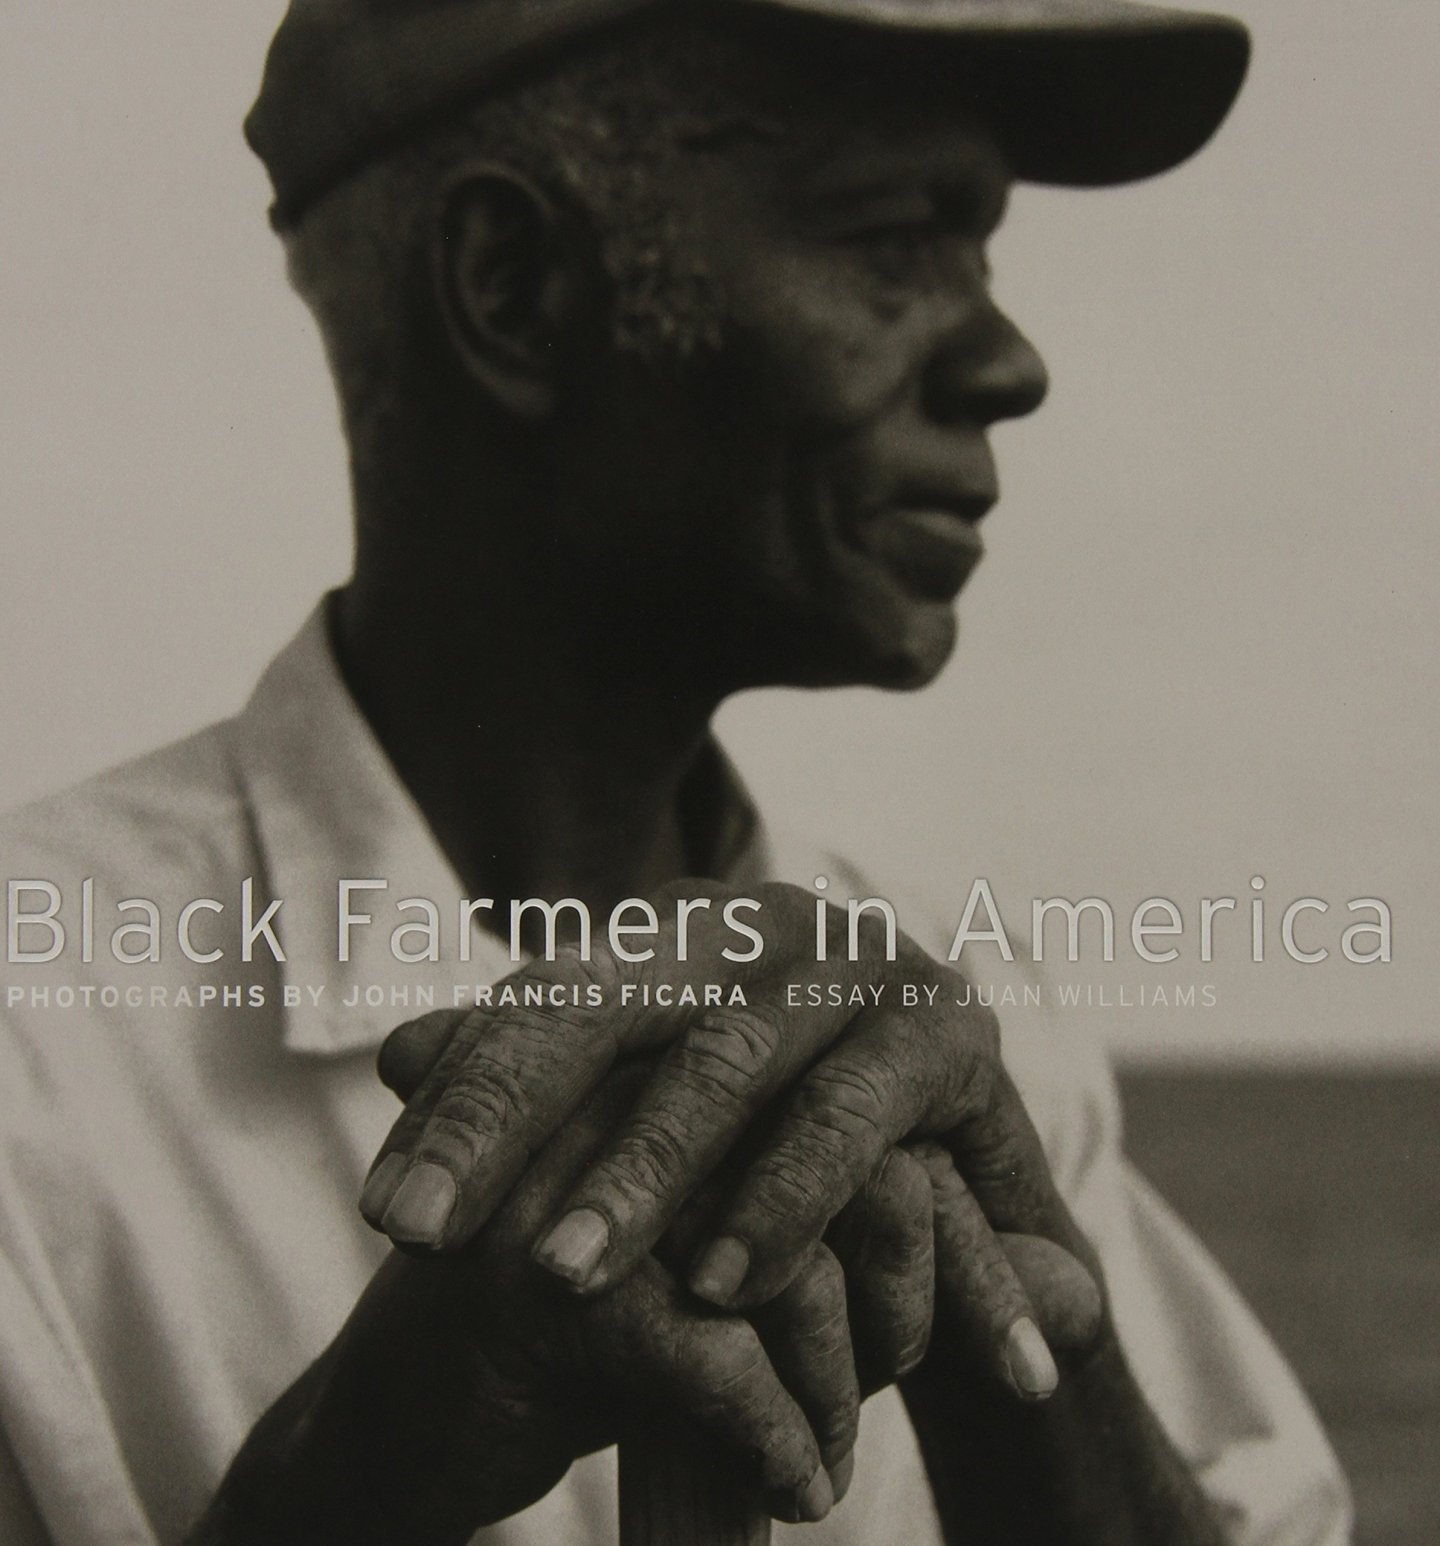 91MYJtw0JrL-1440x1546 Black Farmers: Books On African American Farming To Add  To Your Library